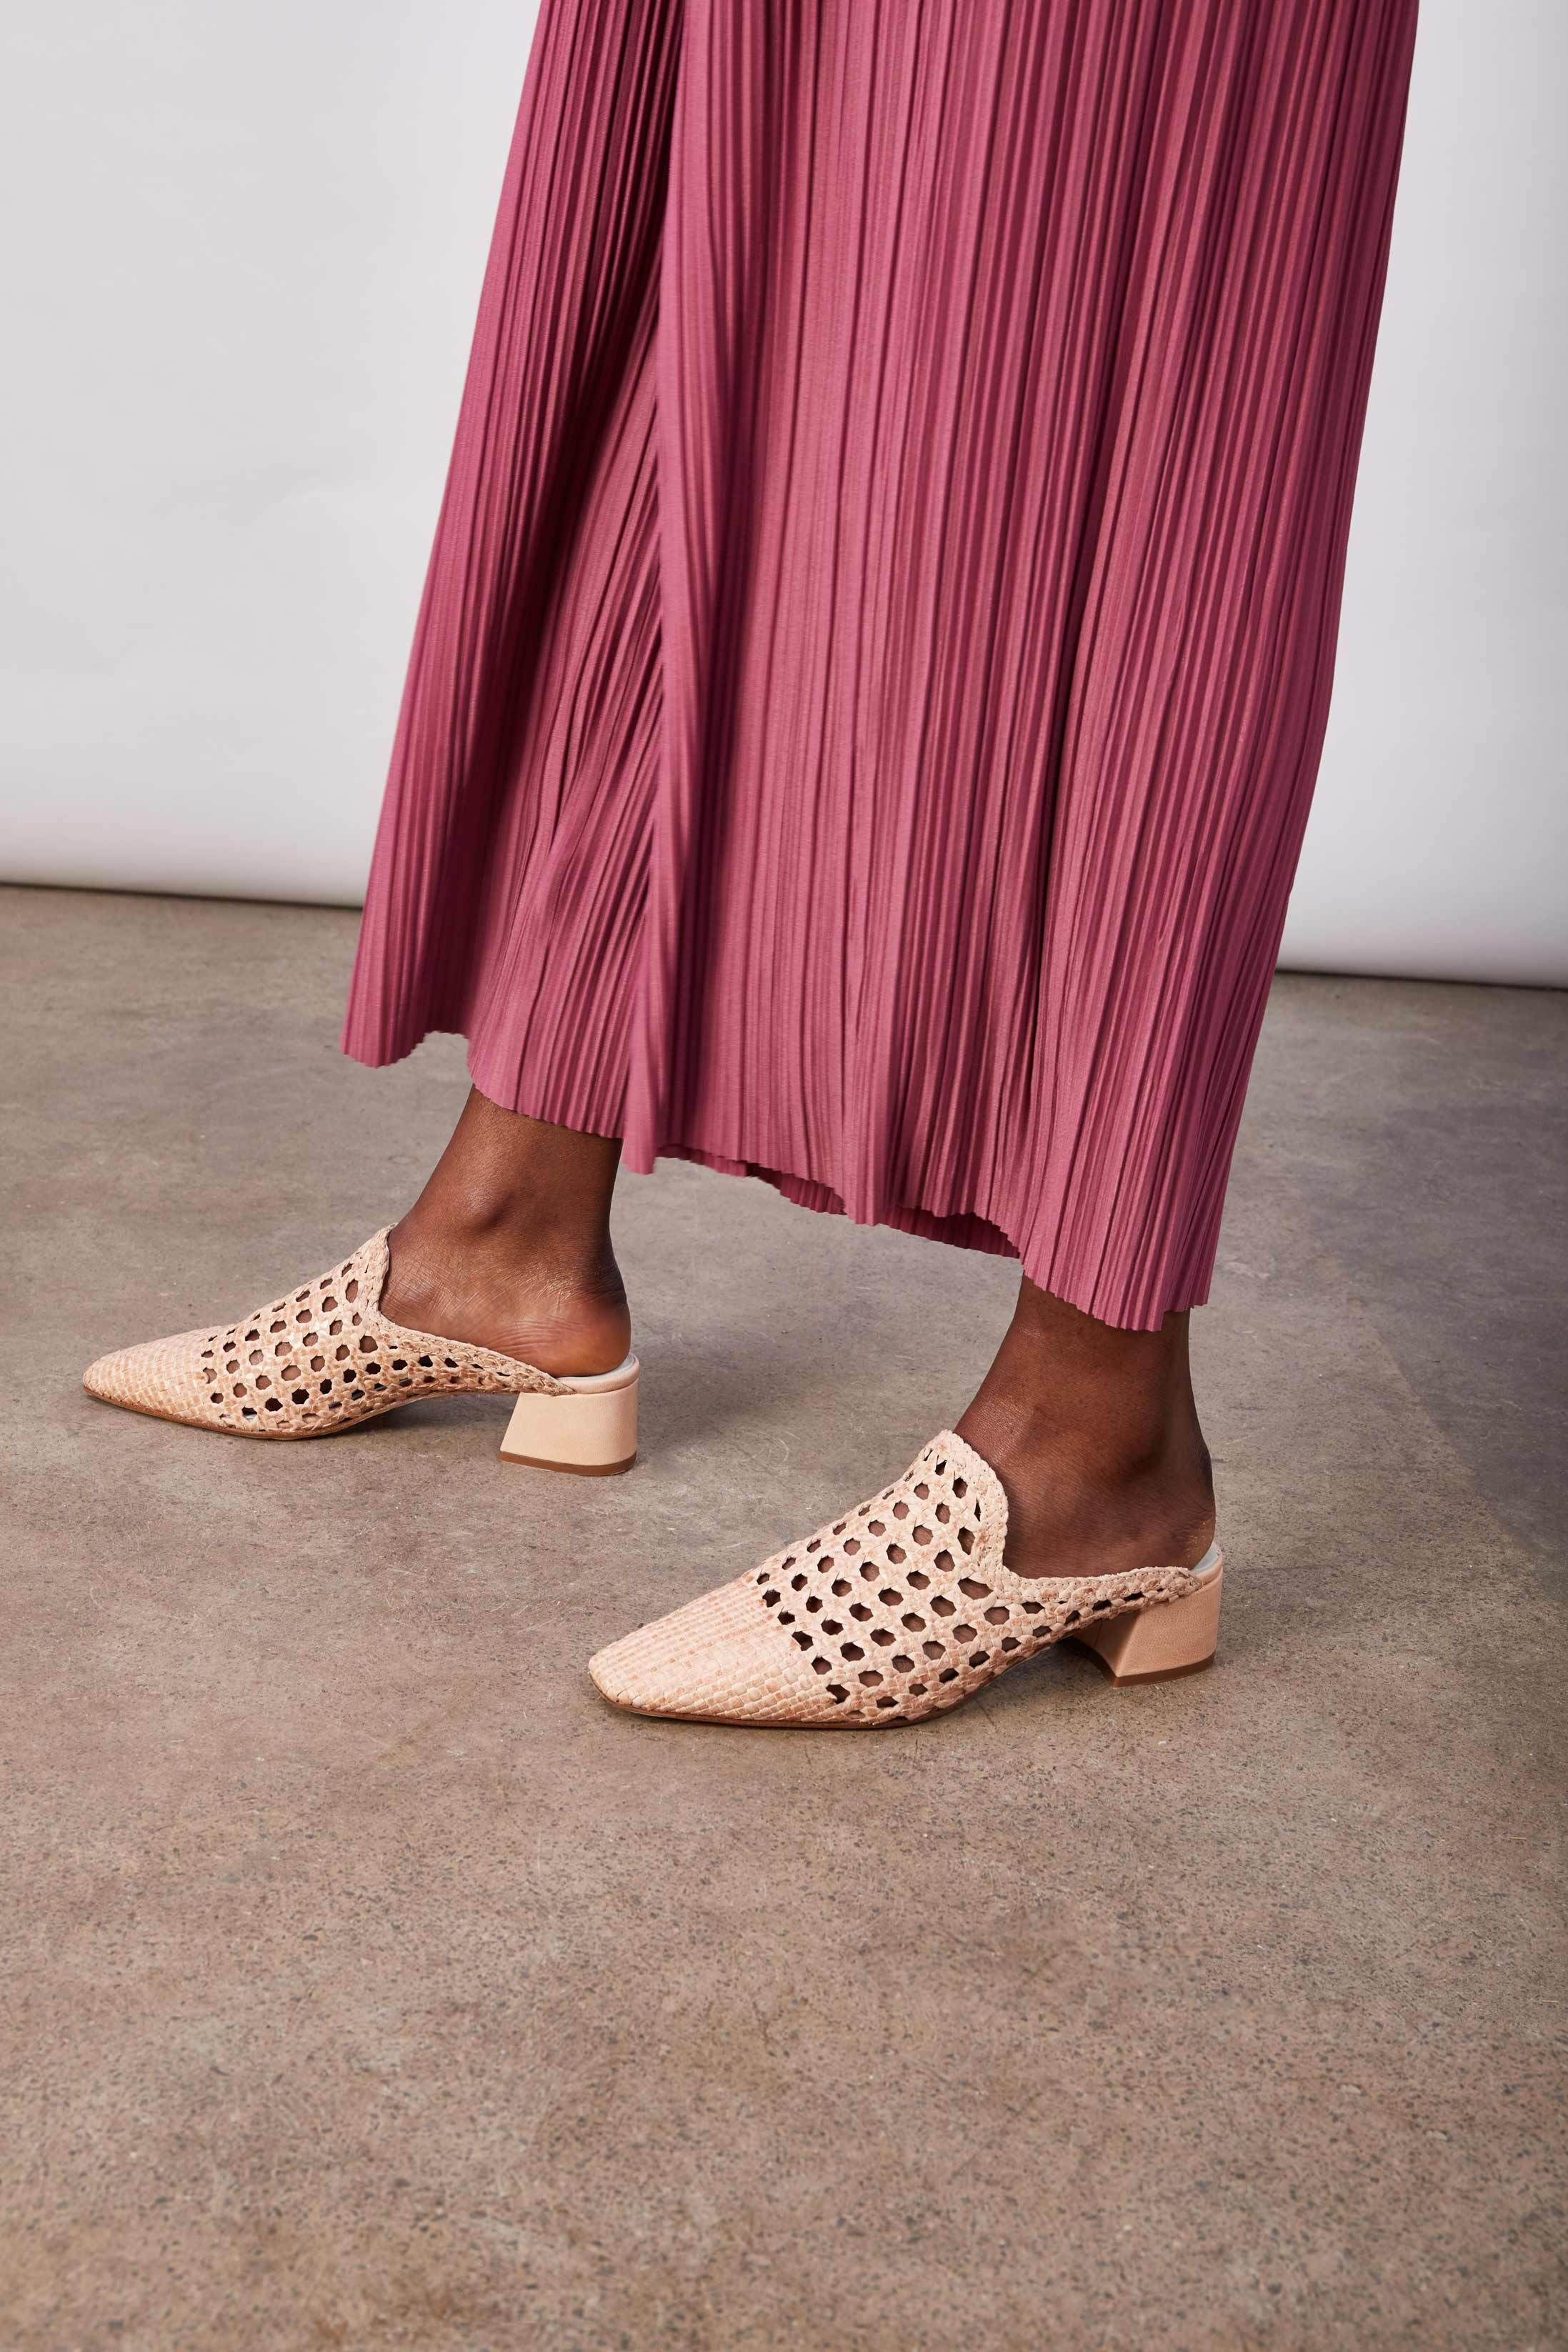 c4294f2a87b Ida Perfume Woven Leather Mules | shoes | Leather mules, Pink mules ...